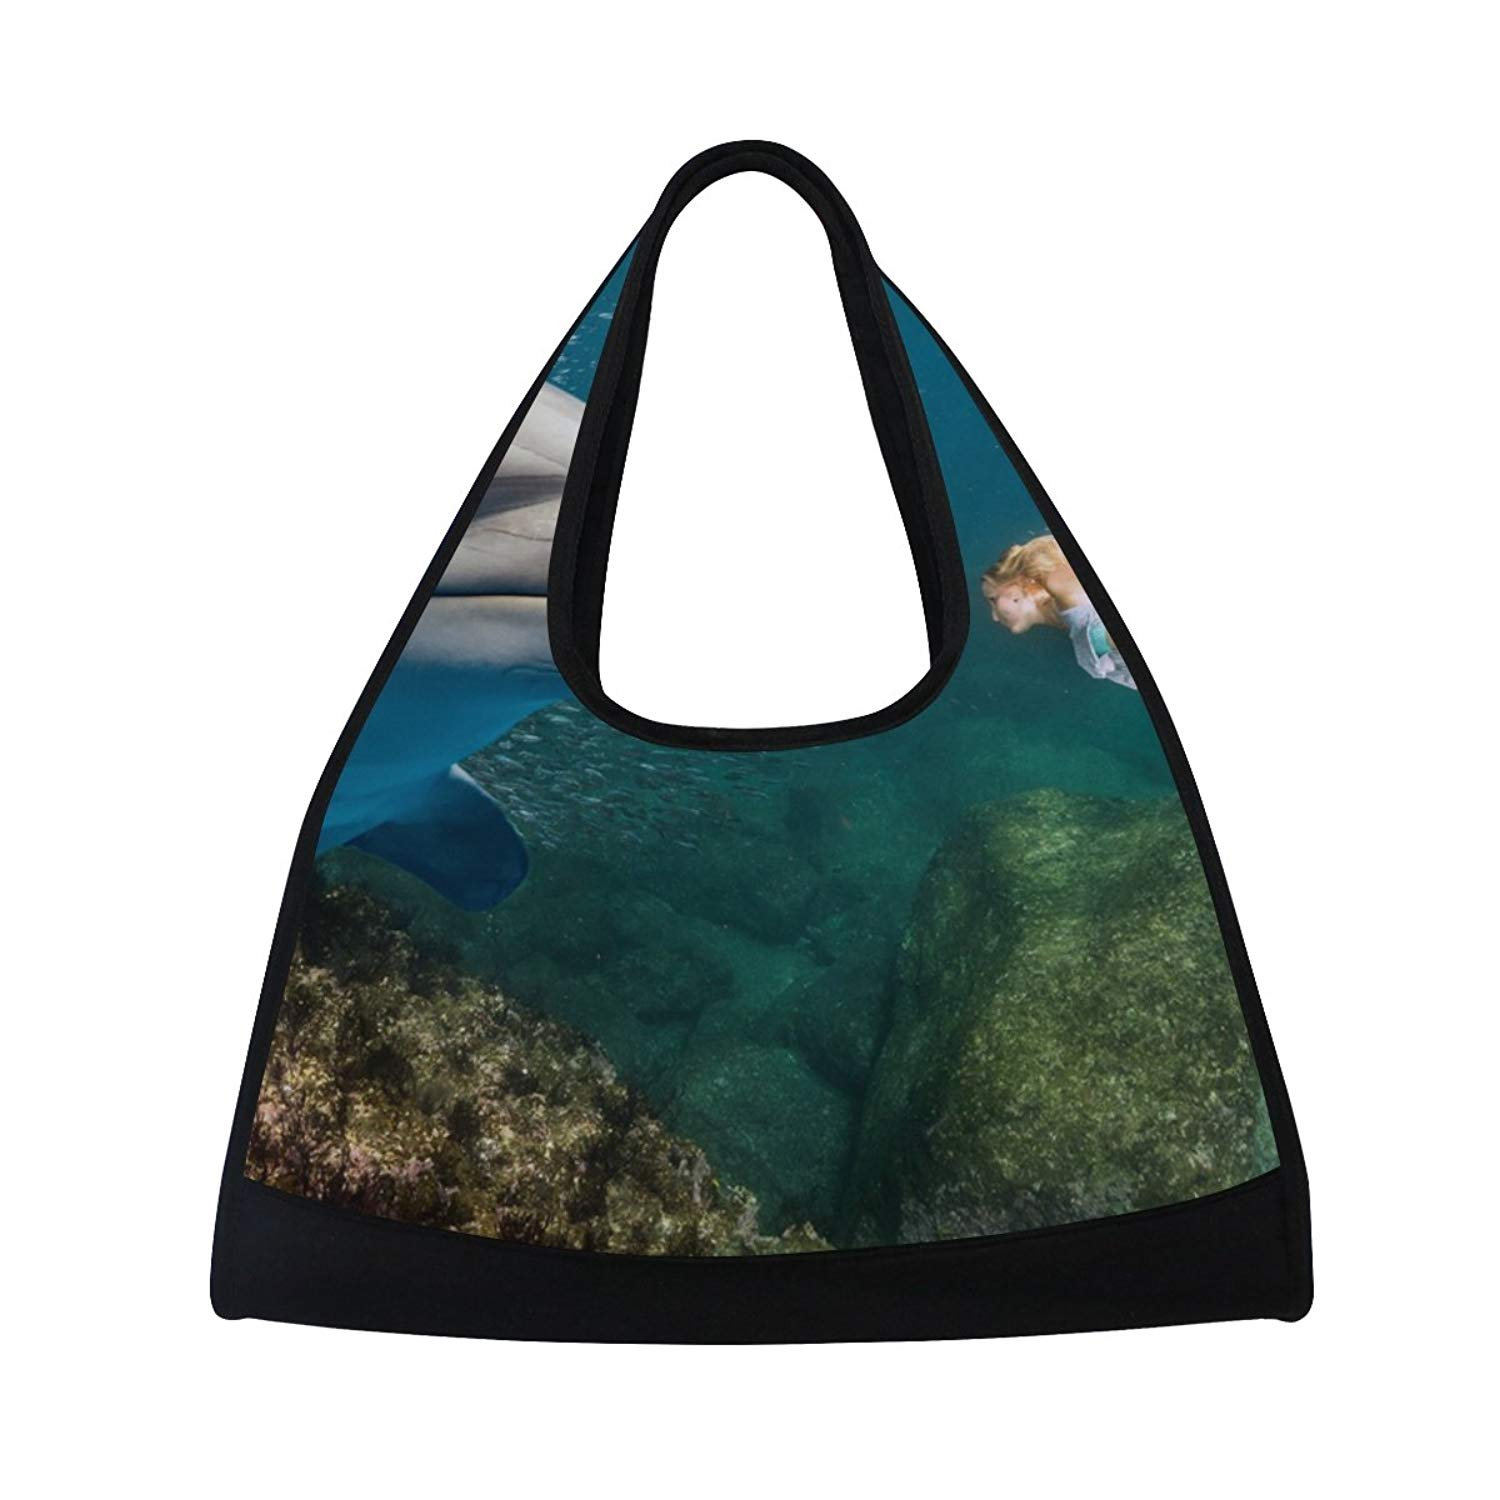 069f1baeffc4 Get Quotations · MAPOLO Dolphin Underwater Meets Blonde Mermaid Travel Duffel  Bag Sports Gym Bag Shoulder Bag